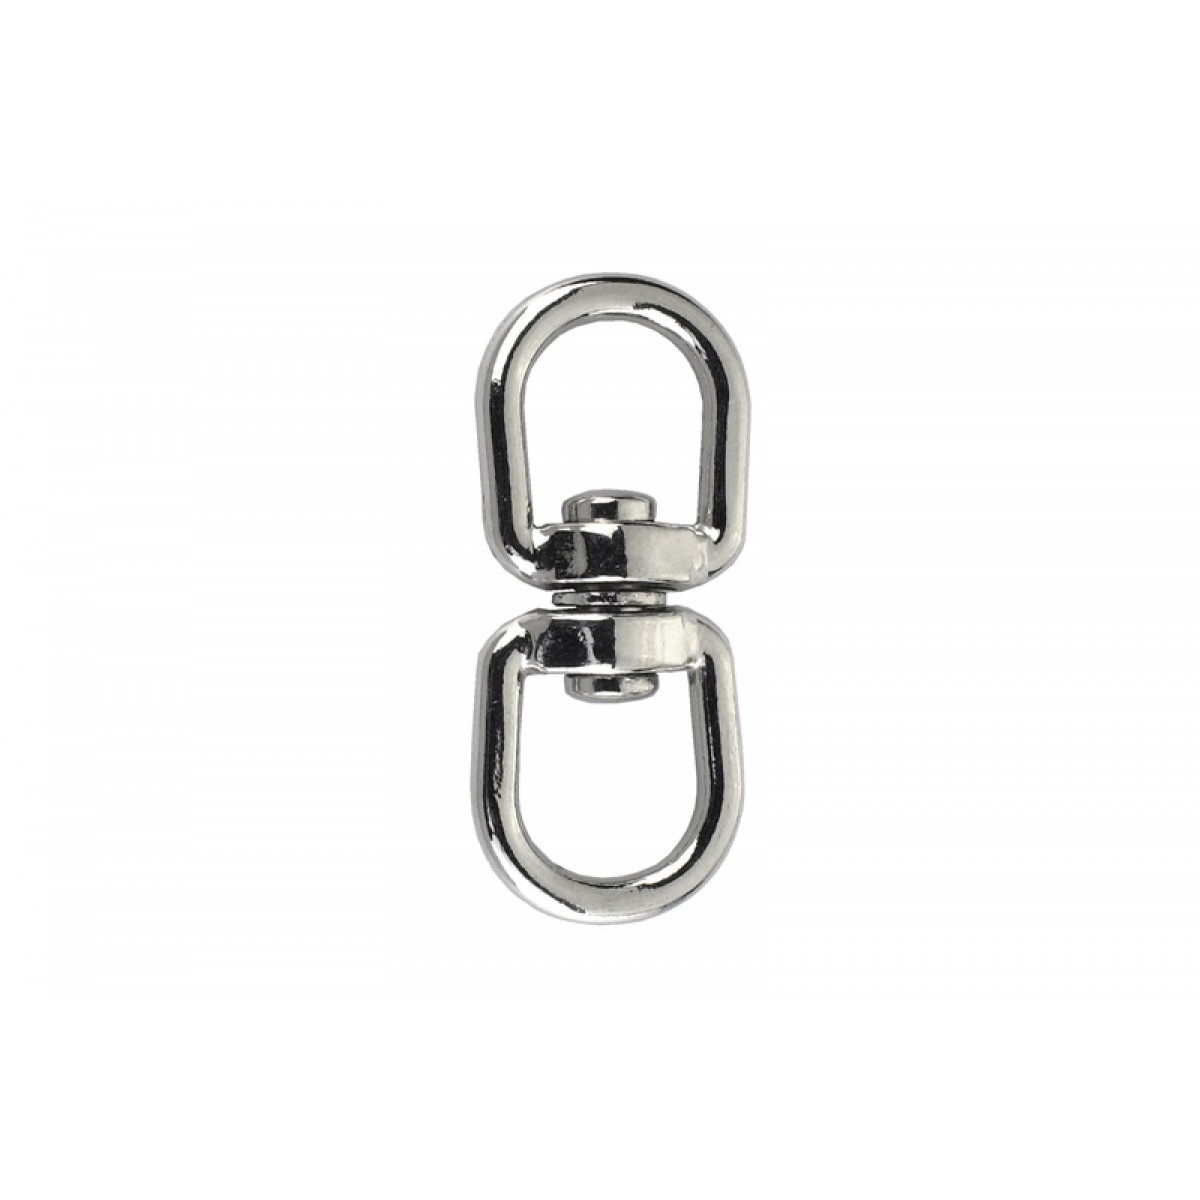 Double Ended Swivel Nickel Coated 10mm ***